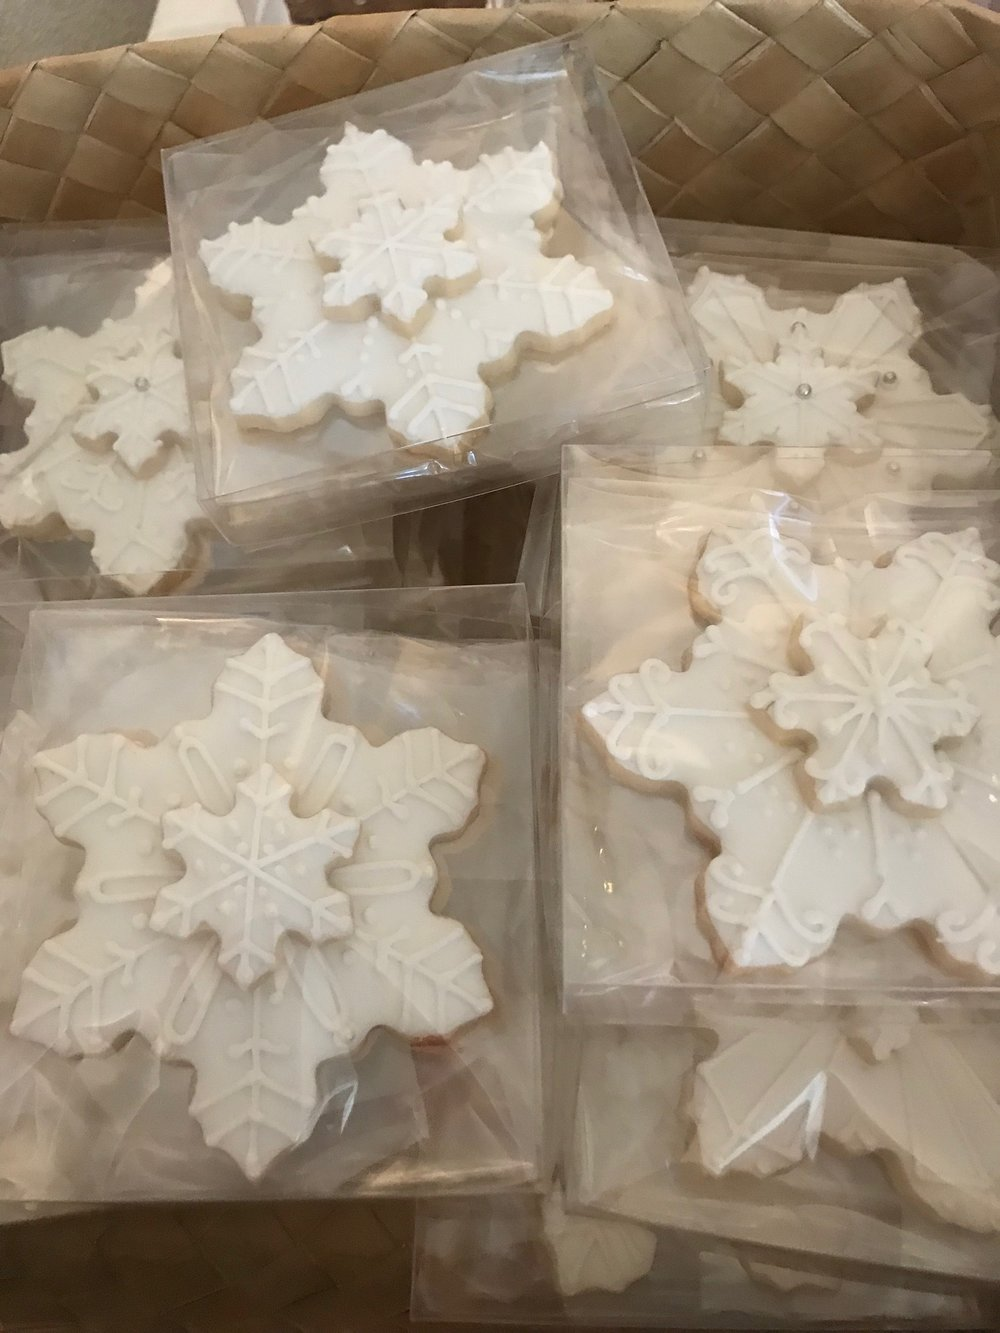 Snowflake Cookies by Zoe, Hawaii